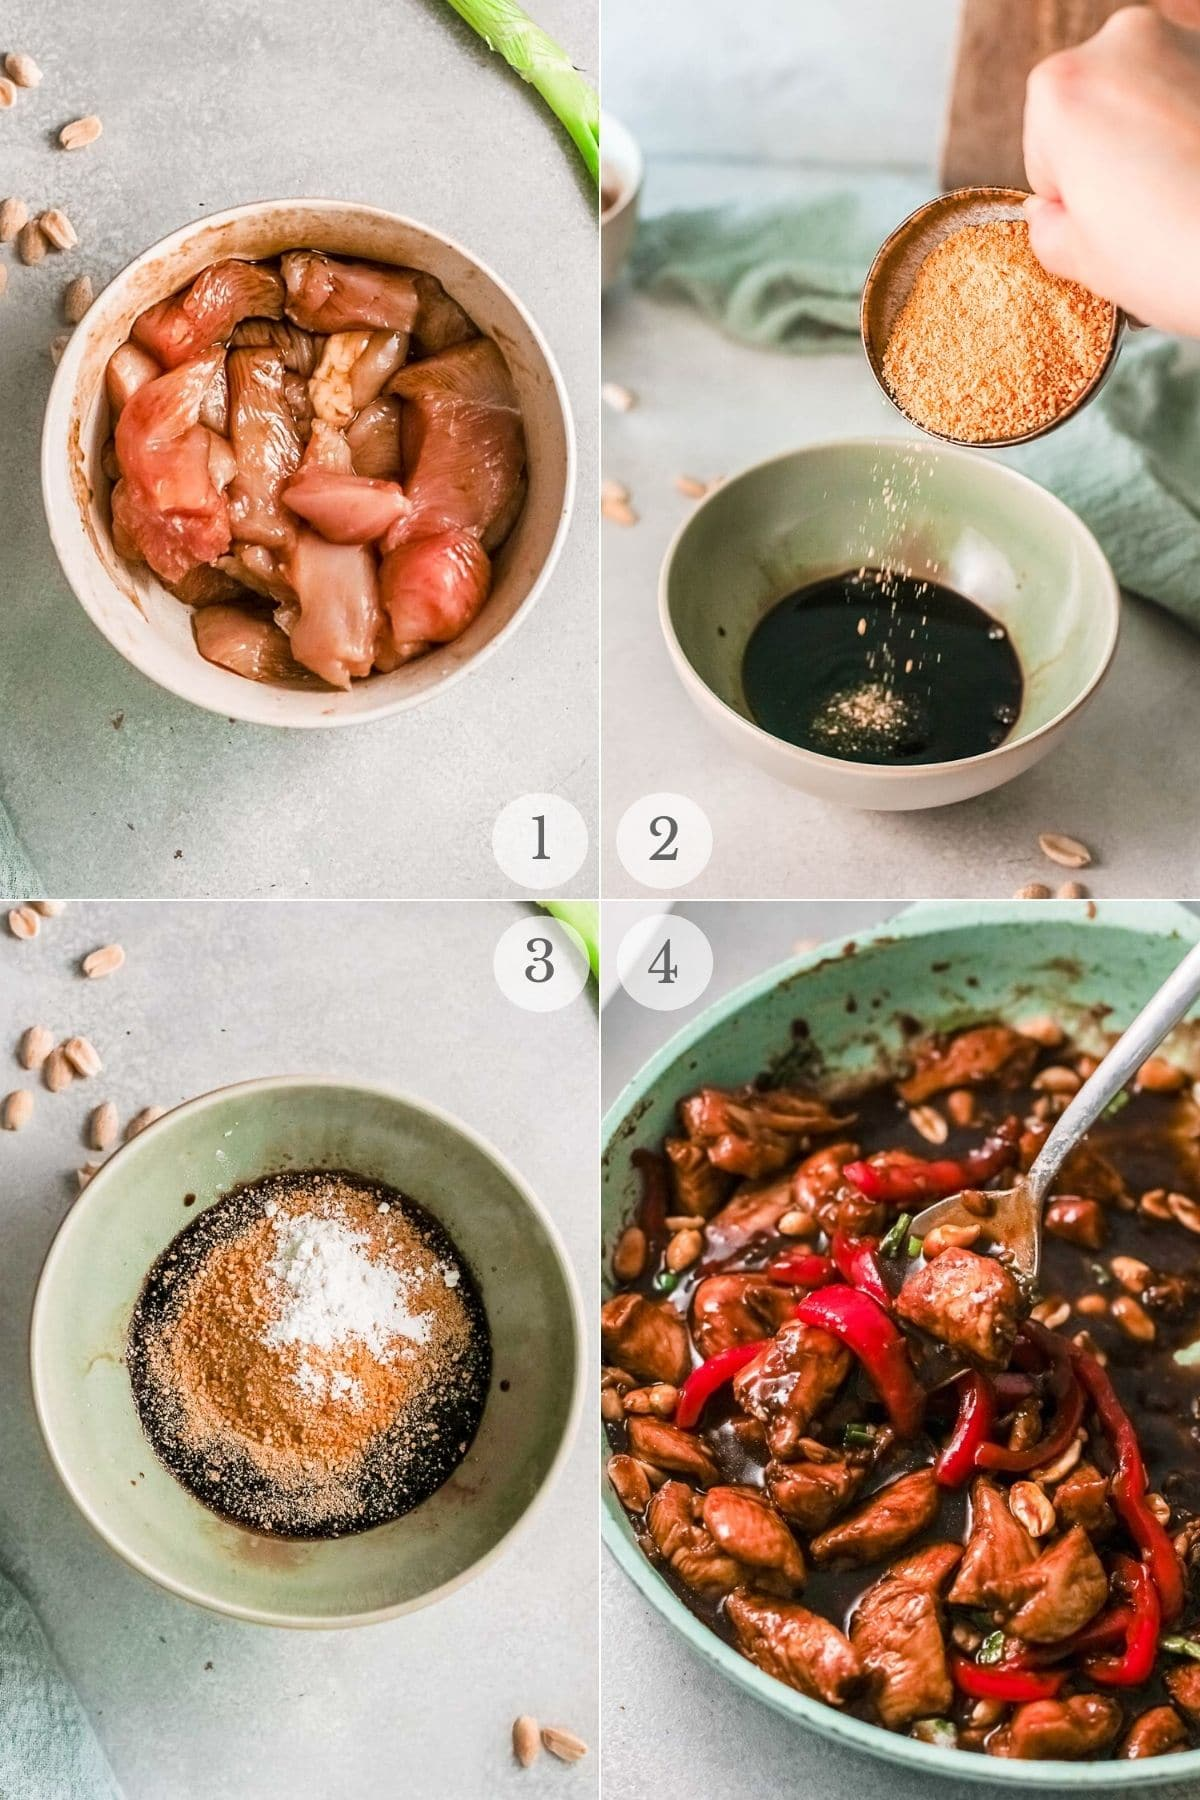 kung pao chicken recipe steps 1-4